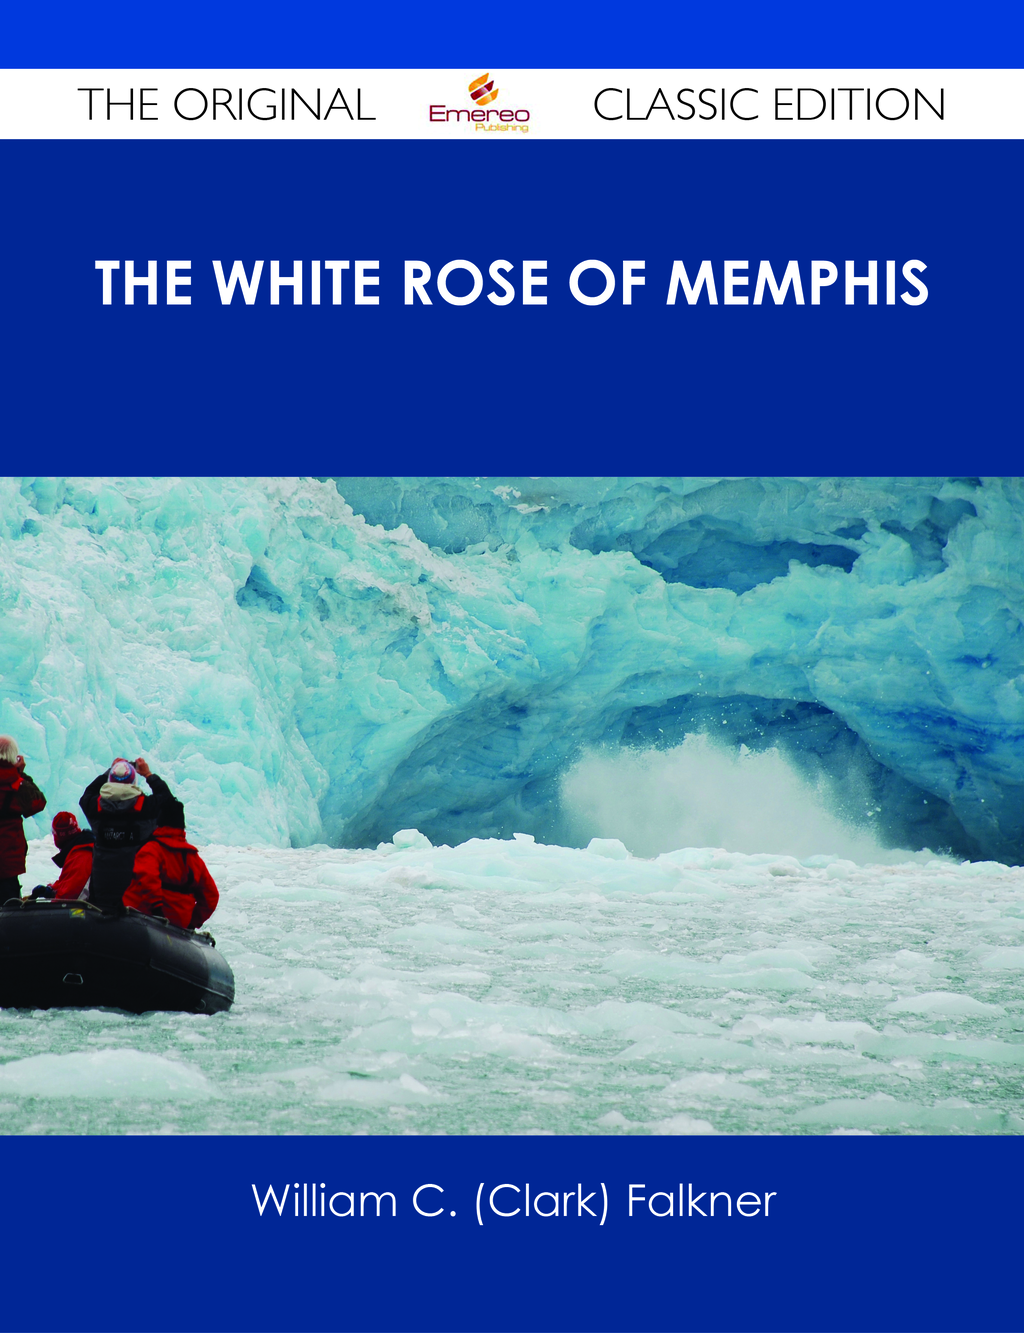 The White Rose of Memphis - The Original Classic Edition